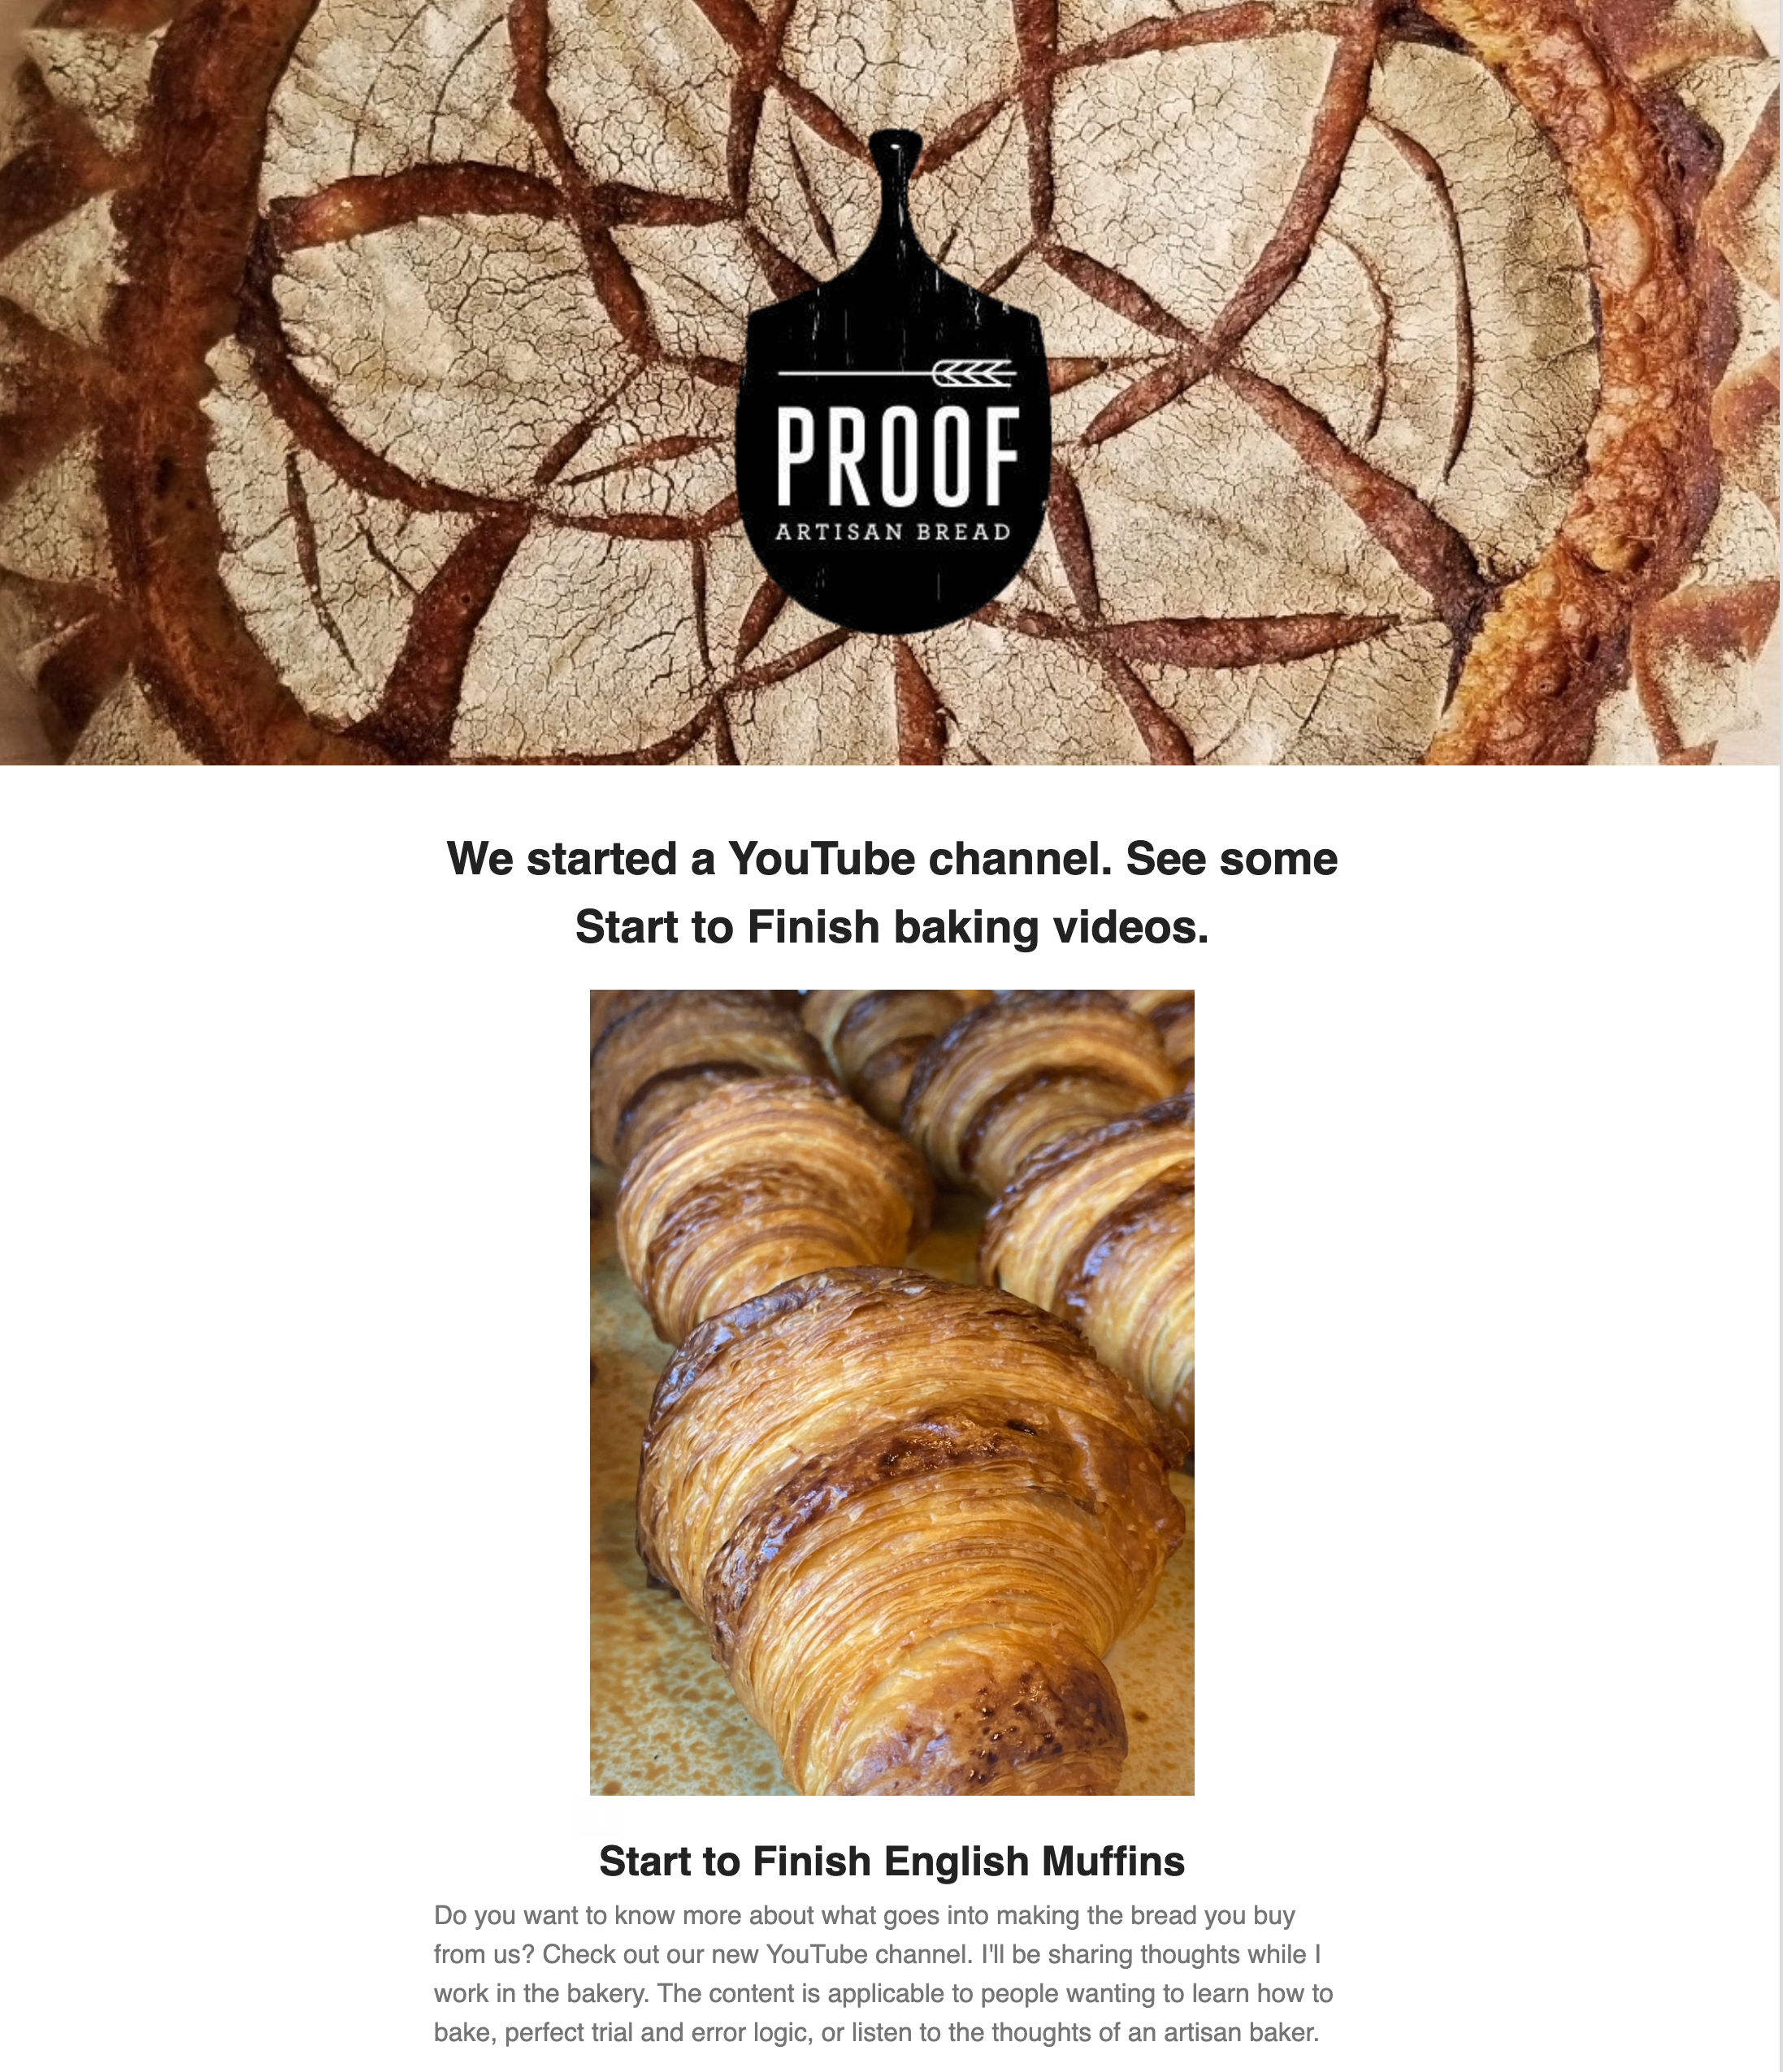 Artisan bakery Proof Bread started a YouTube channel during lockdown.